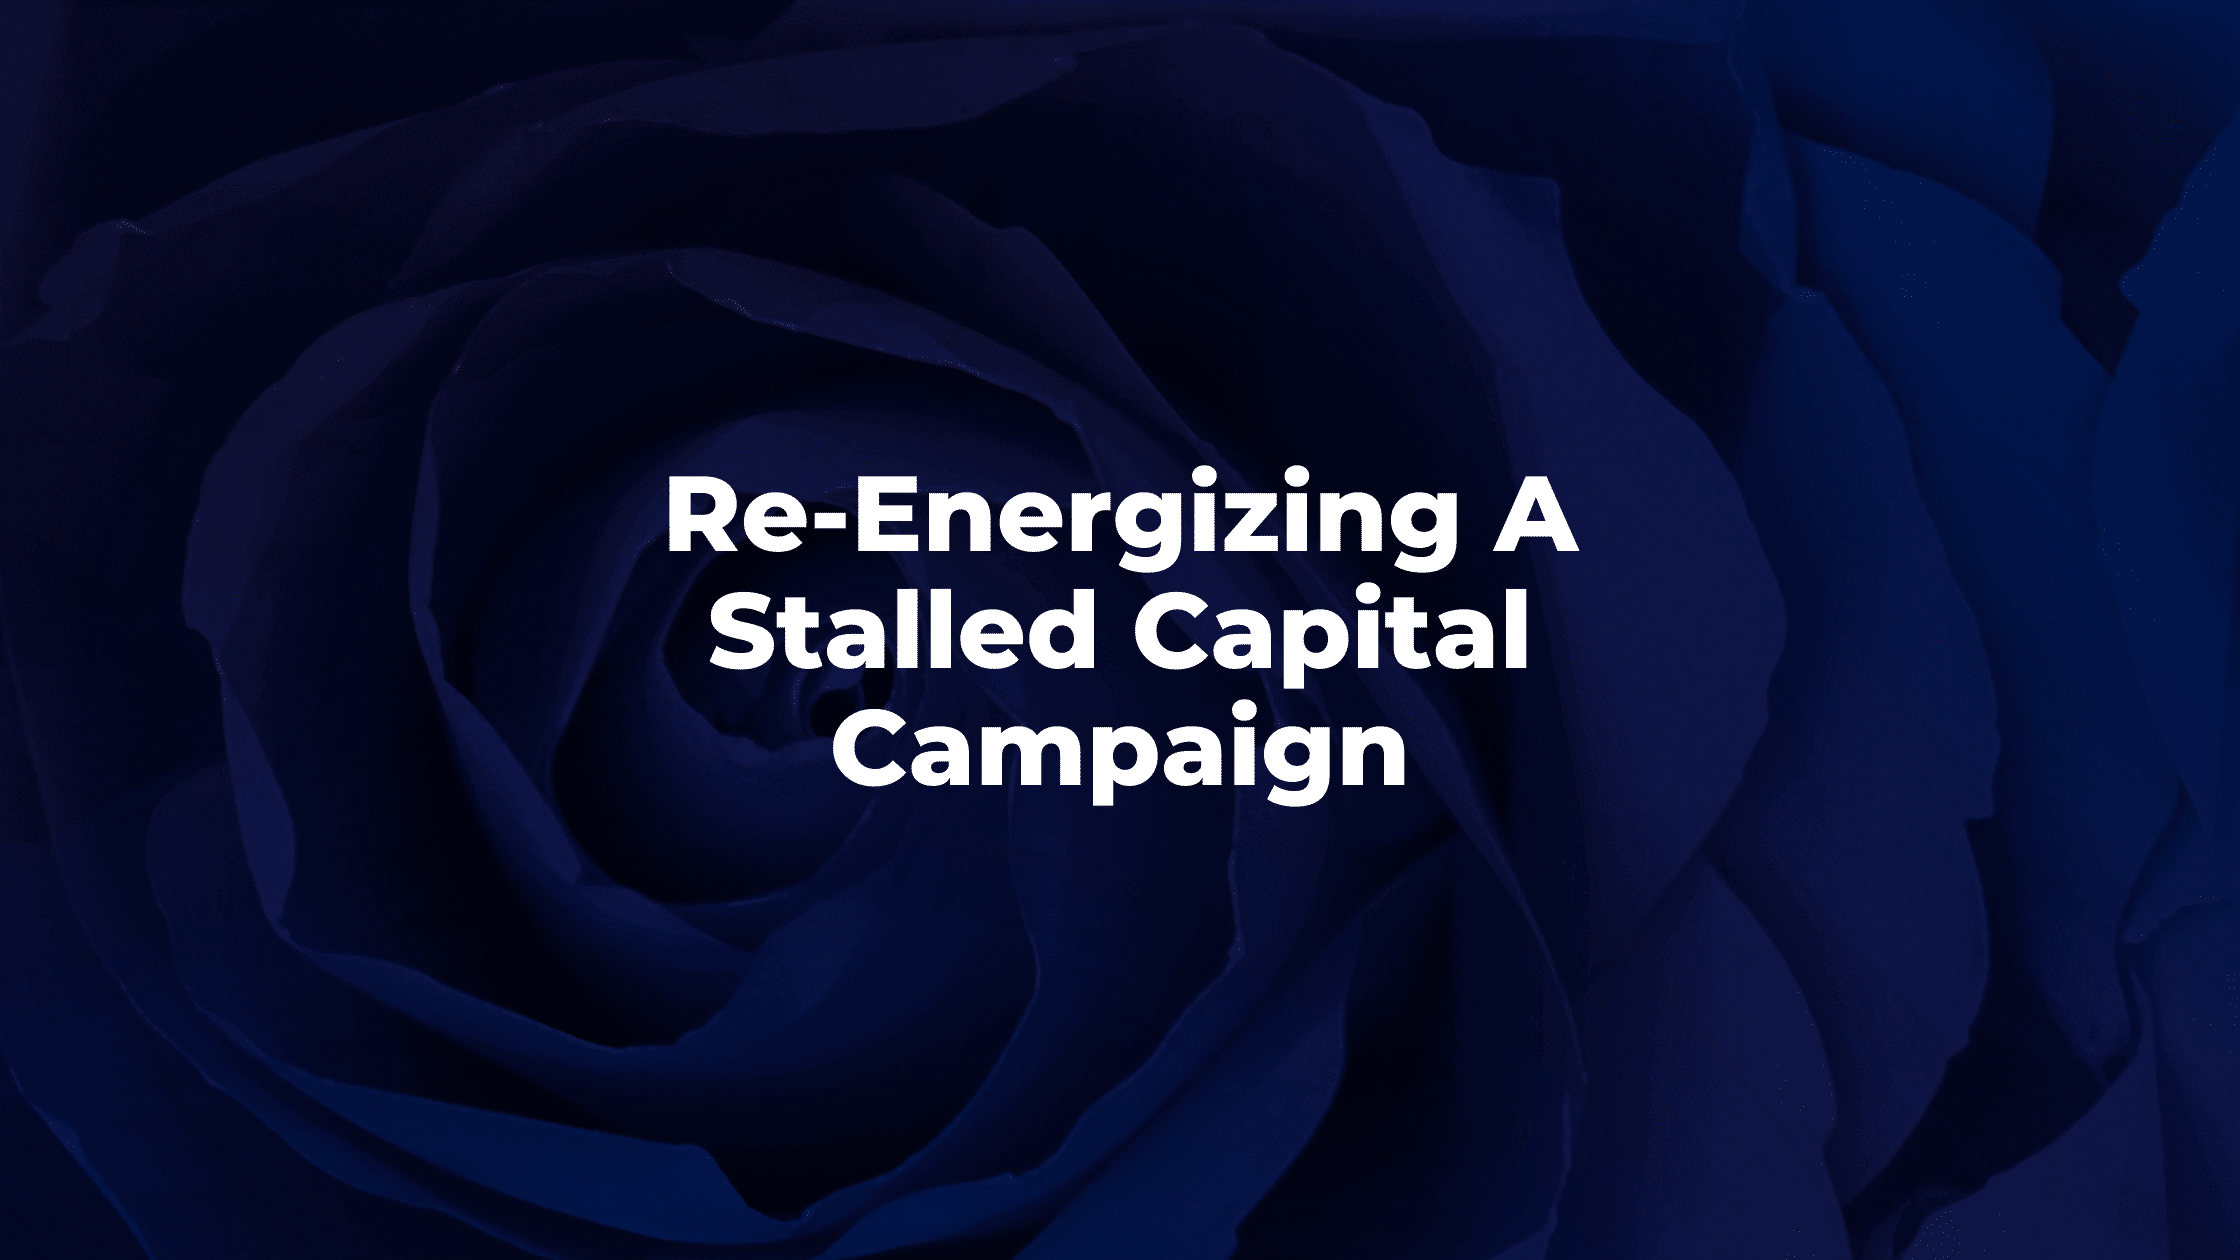 Re-Energizing A Stalled Capital Campaign